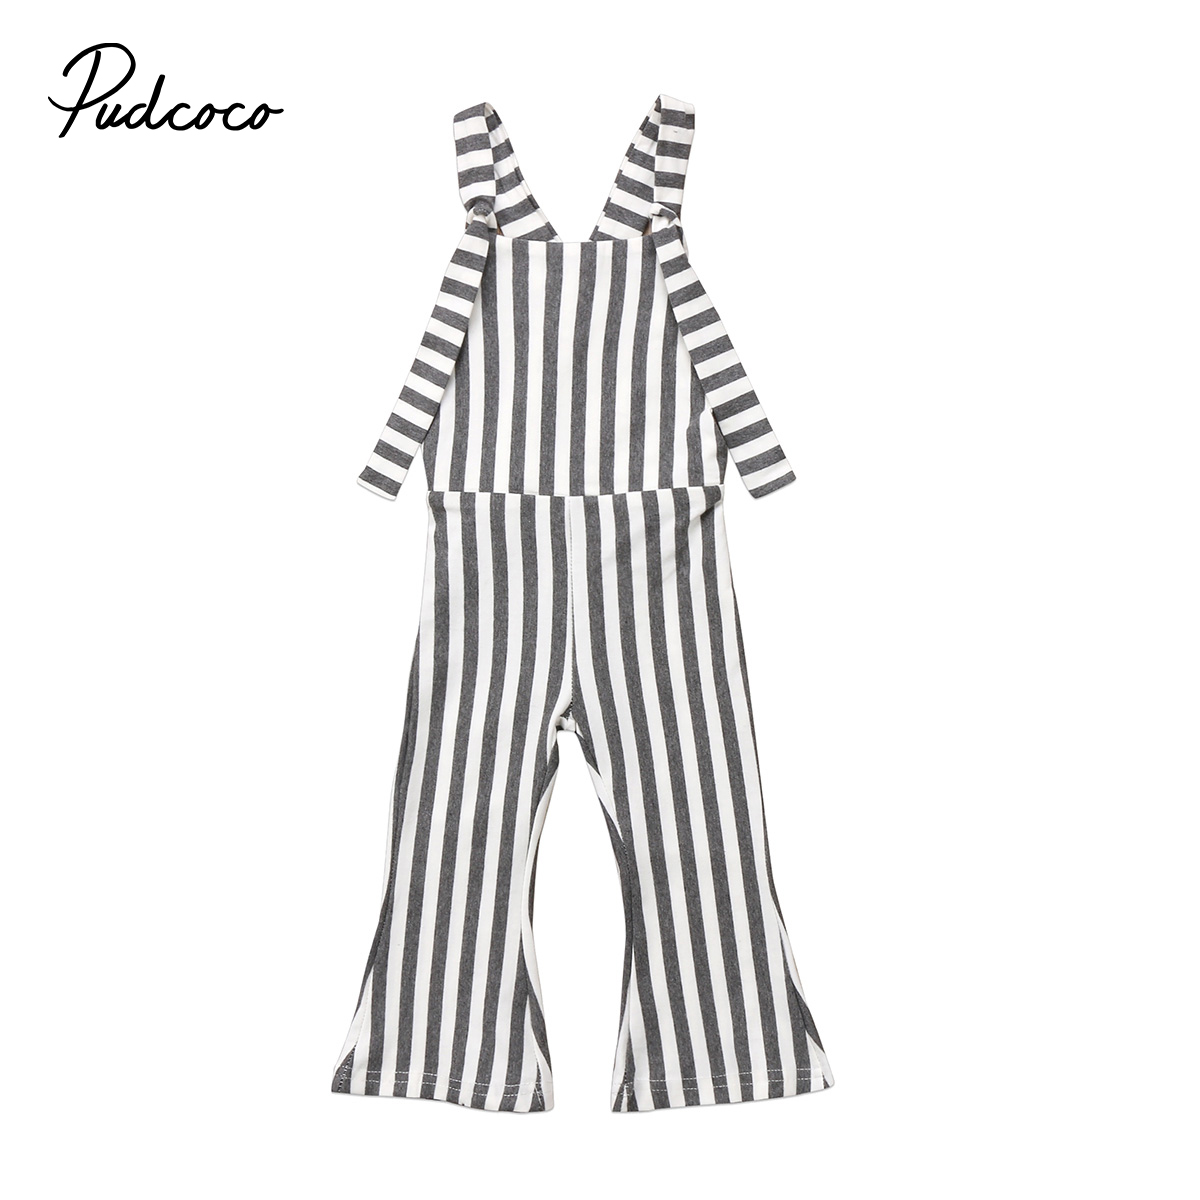 PUDCOCO Brand Kids Baby Girls Striped Brace Pants Overalls Romper Bell Bottom Girl Outfits Clothes 1-5T